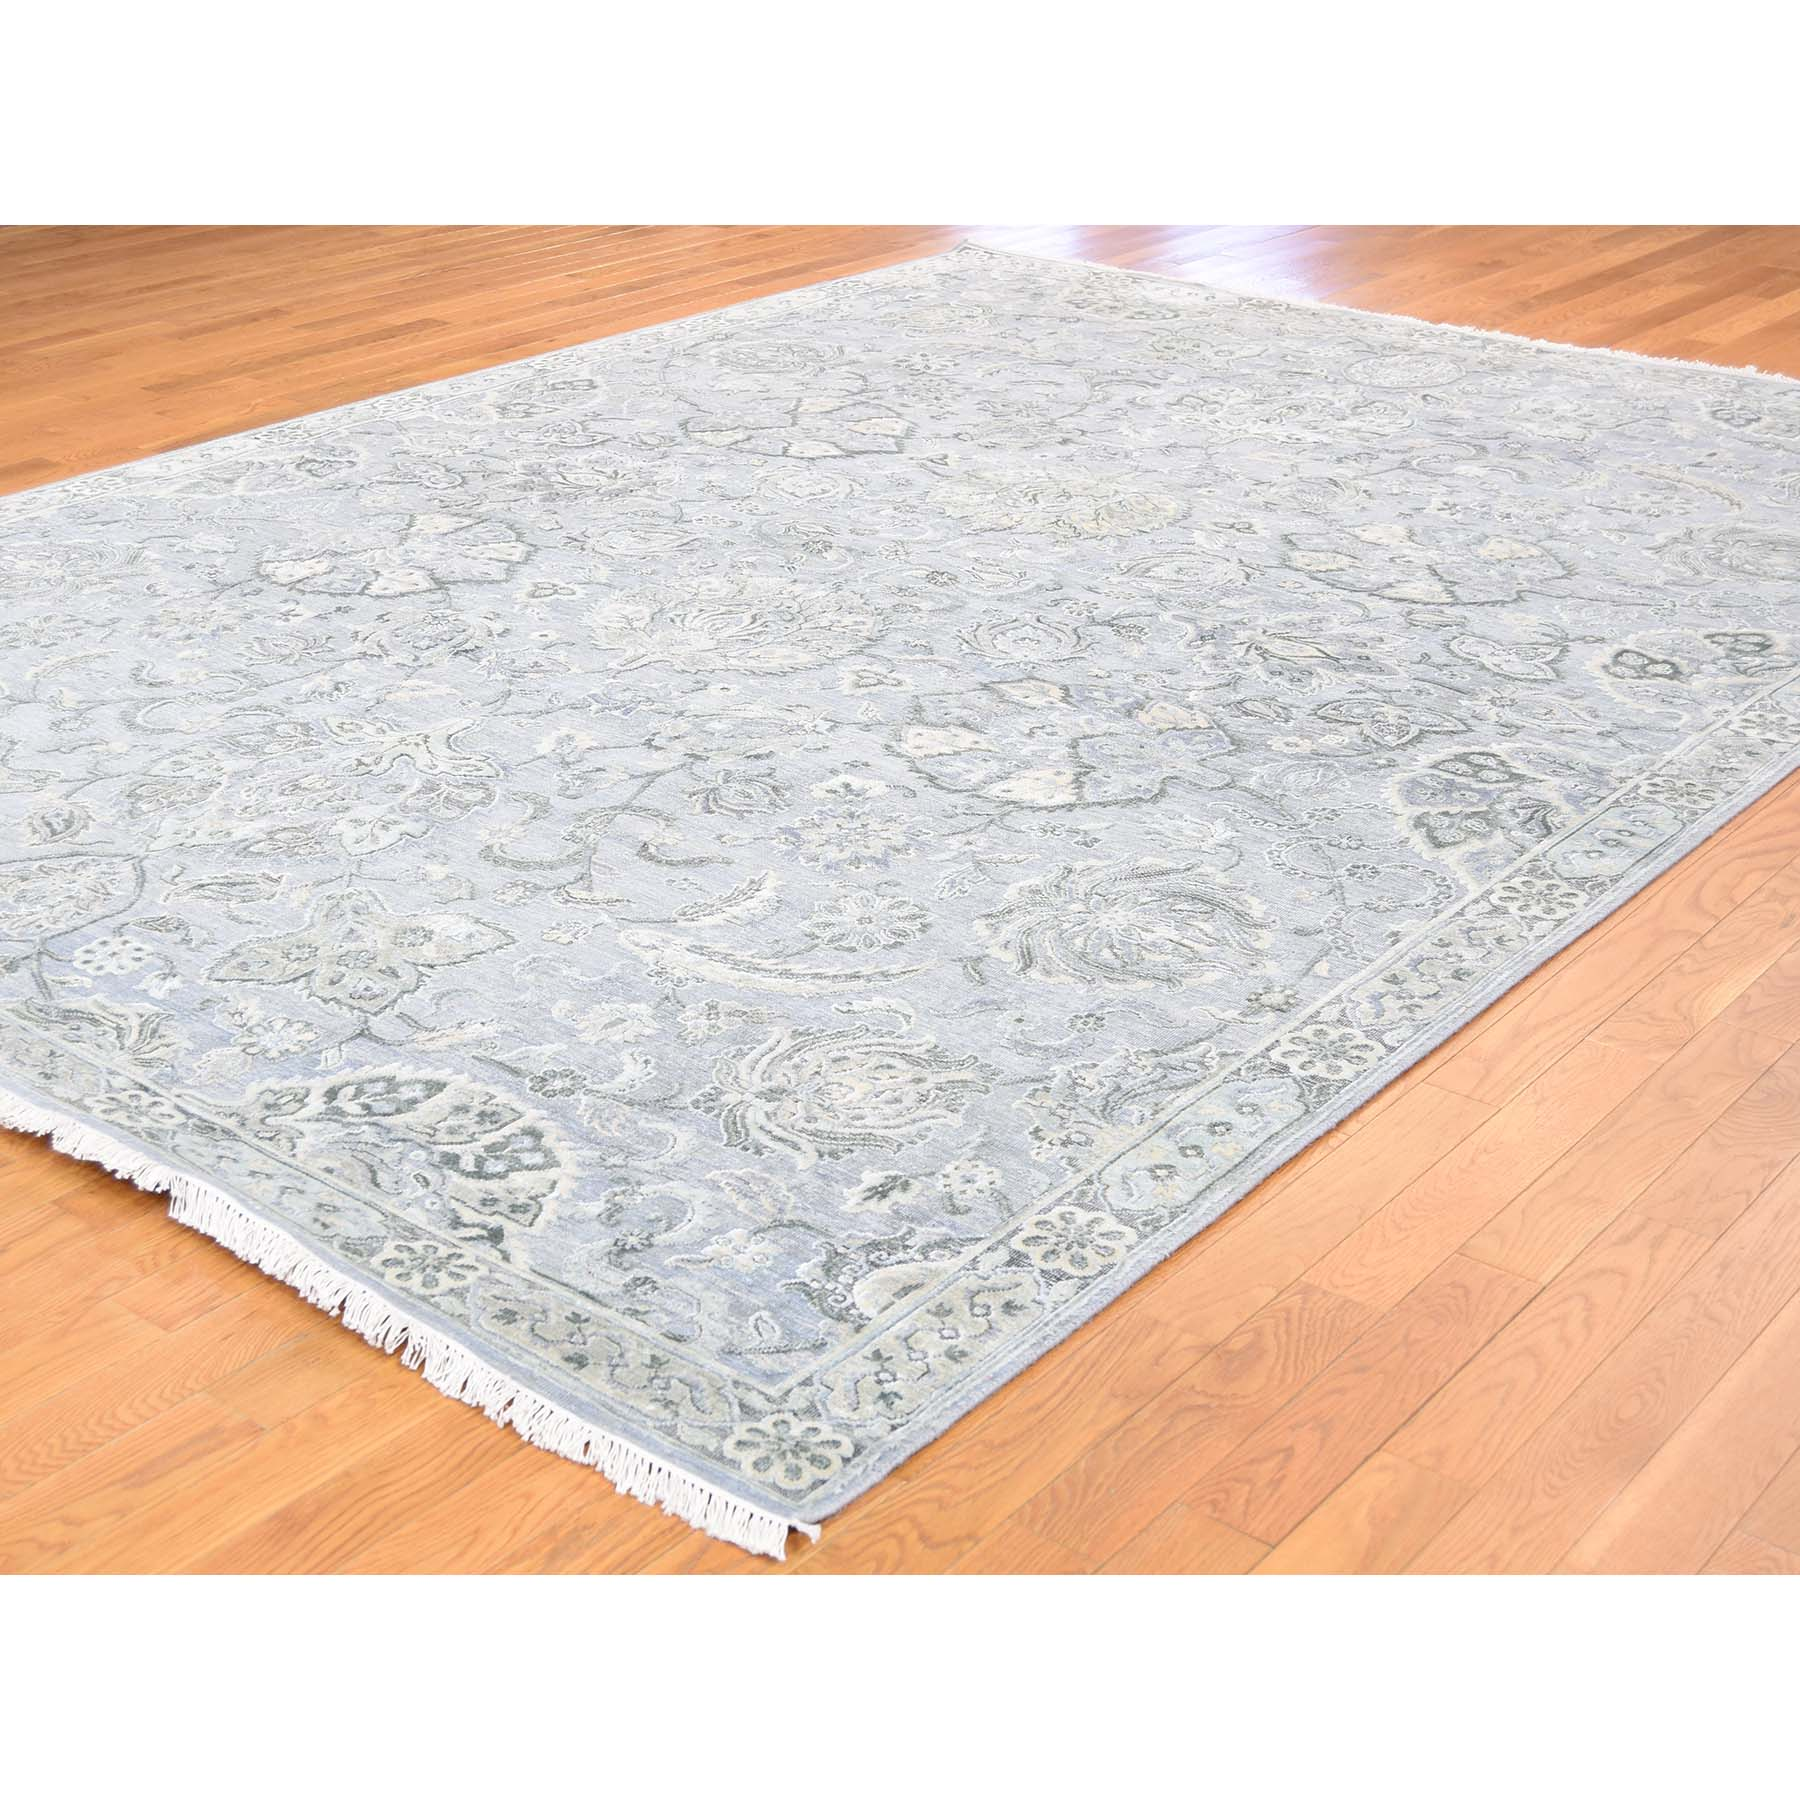 9-x12- Tone on Tone Oushak Silk With Oxidized Wool Hand-Knotted Oriental Rug